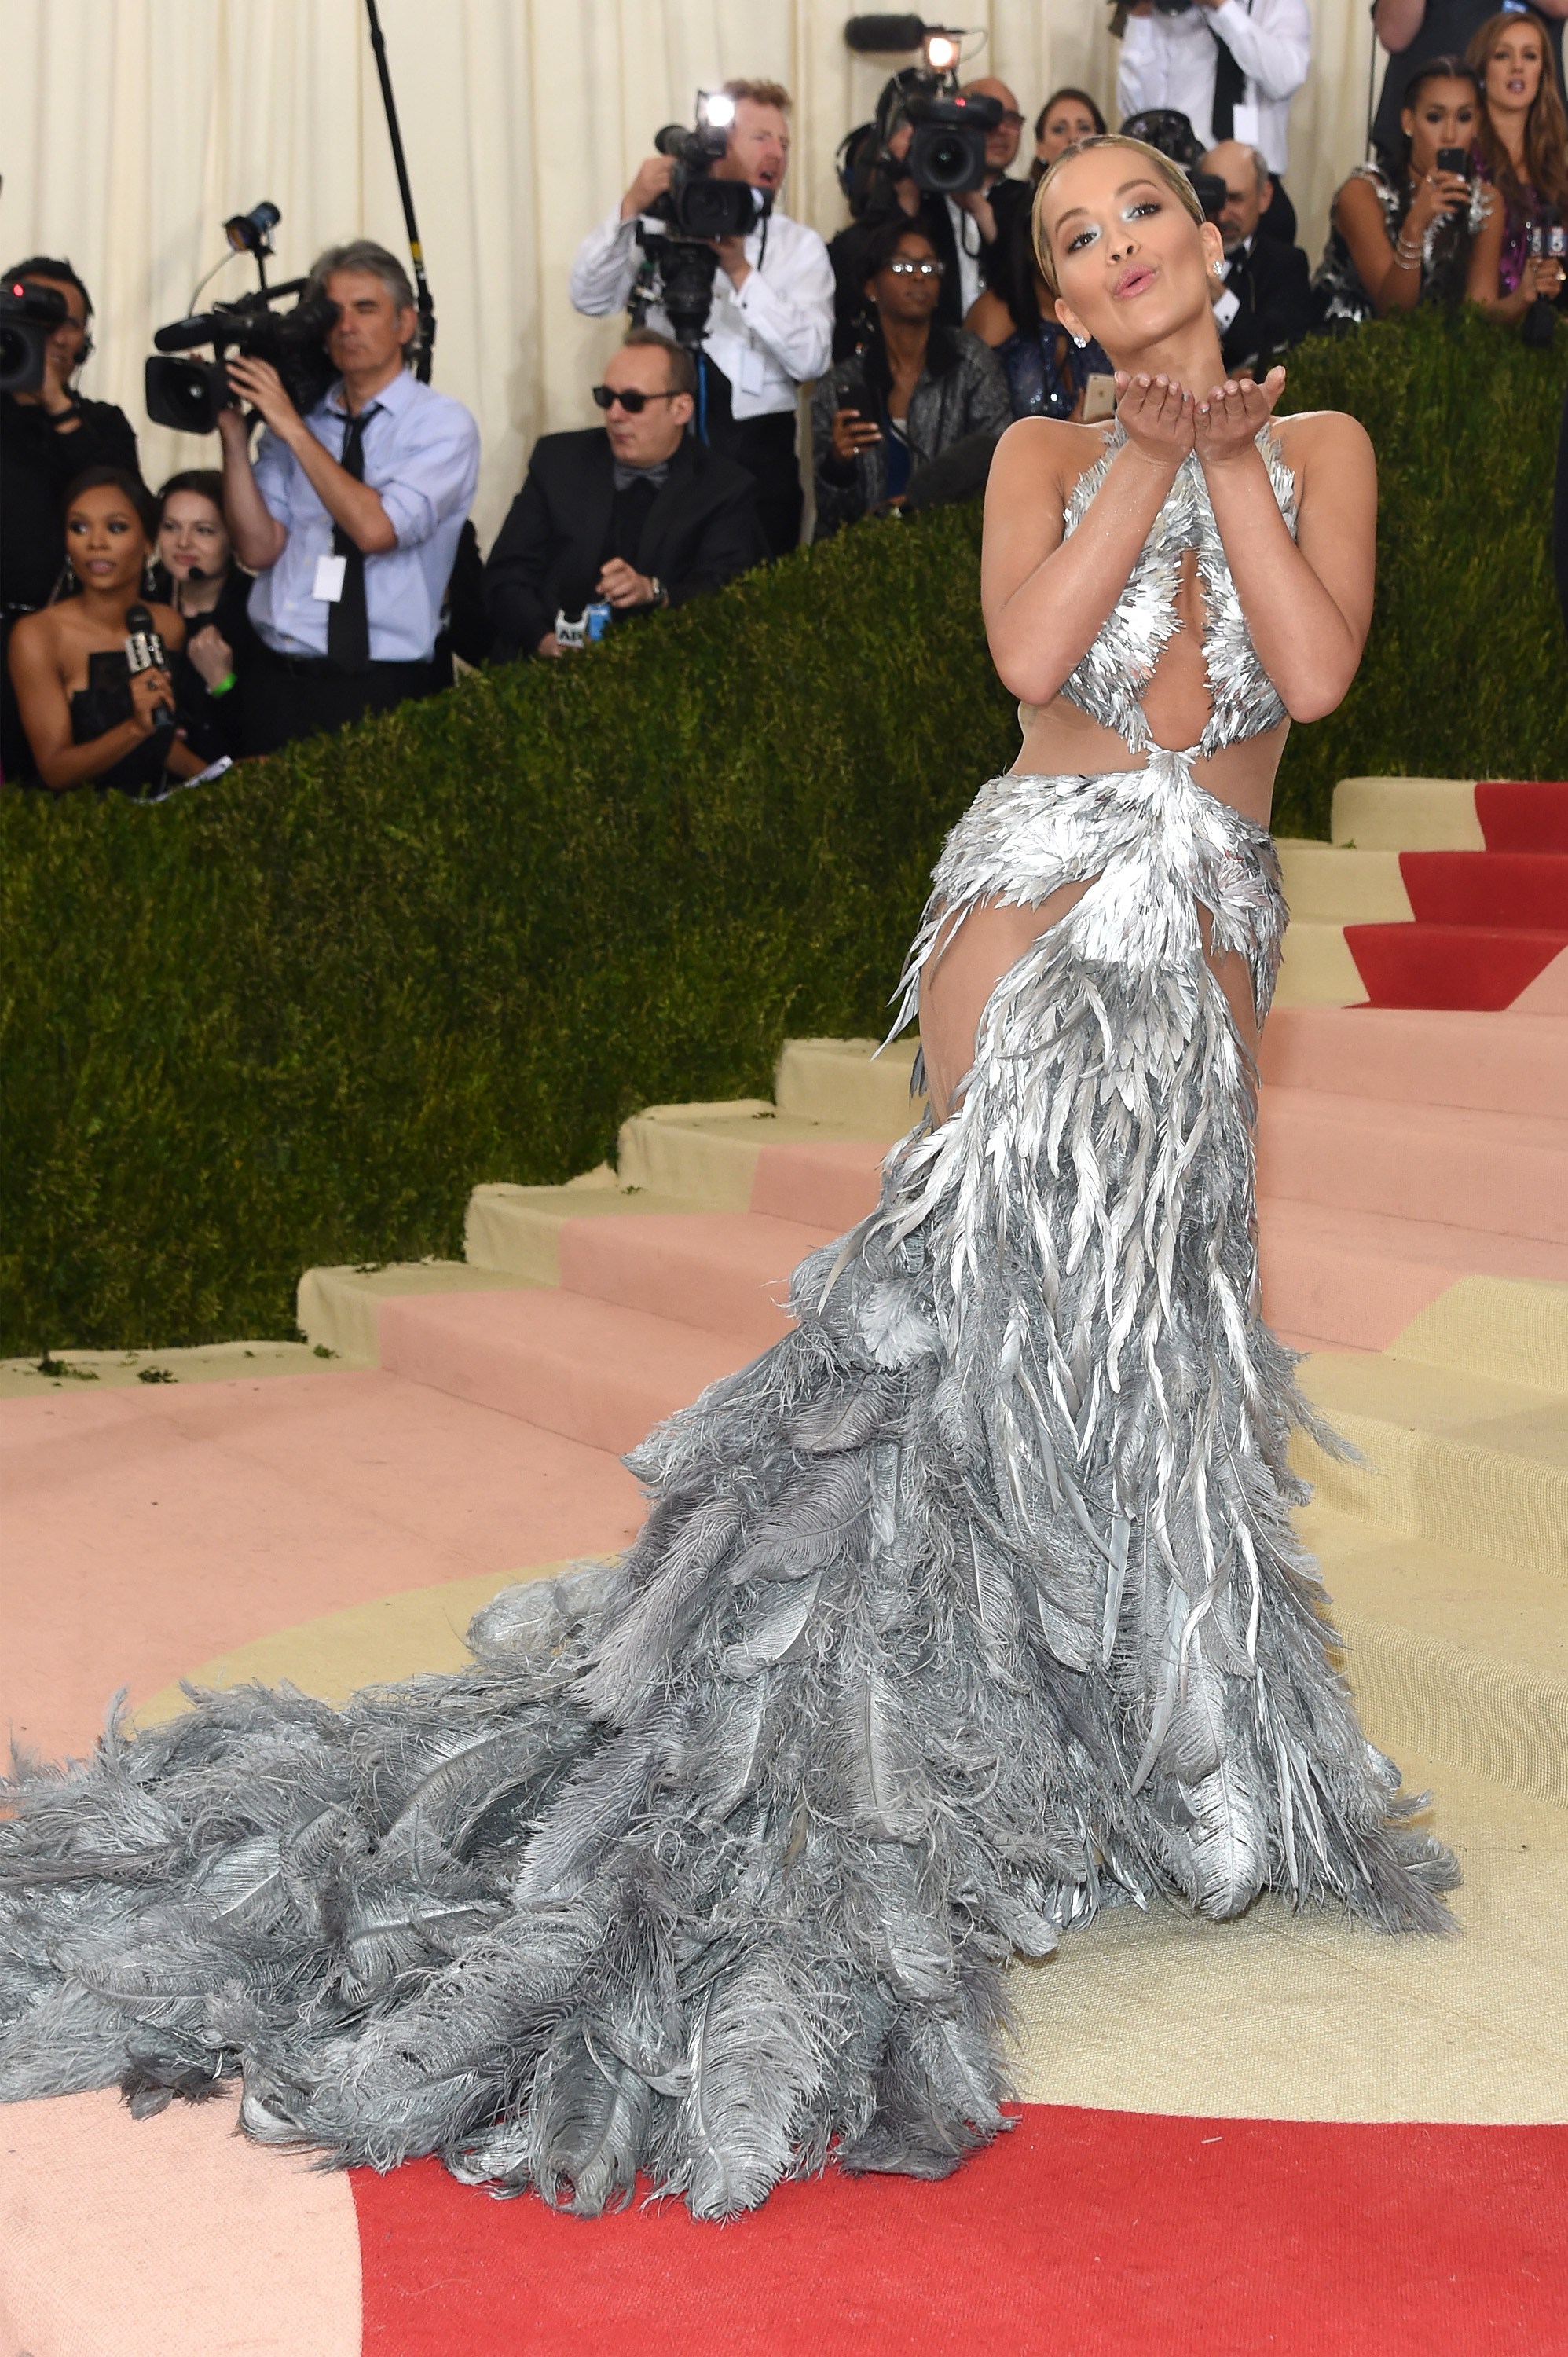 8f443789cd Rita Ora Is Not Becky With the Good Hair, as Her Met Gala Selfie With  Beyoncé Proves